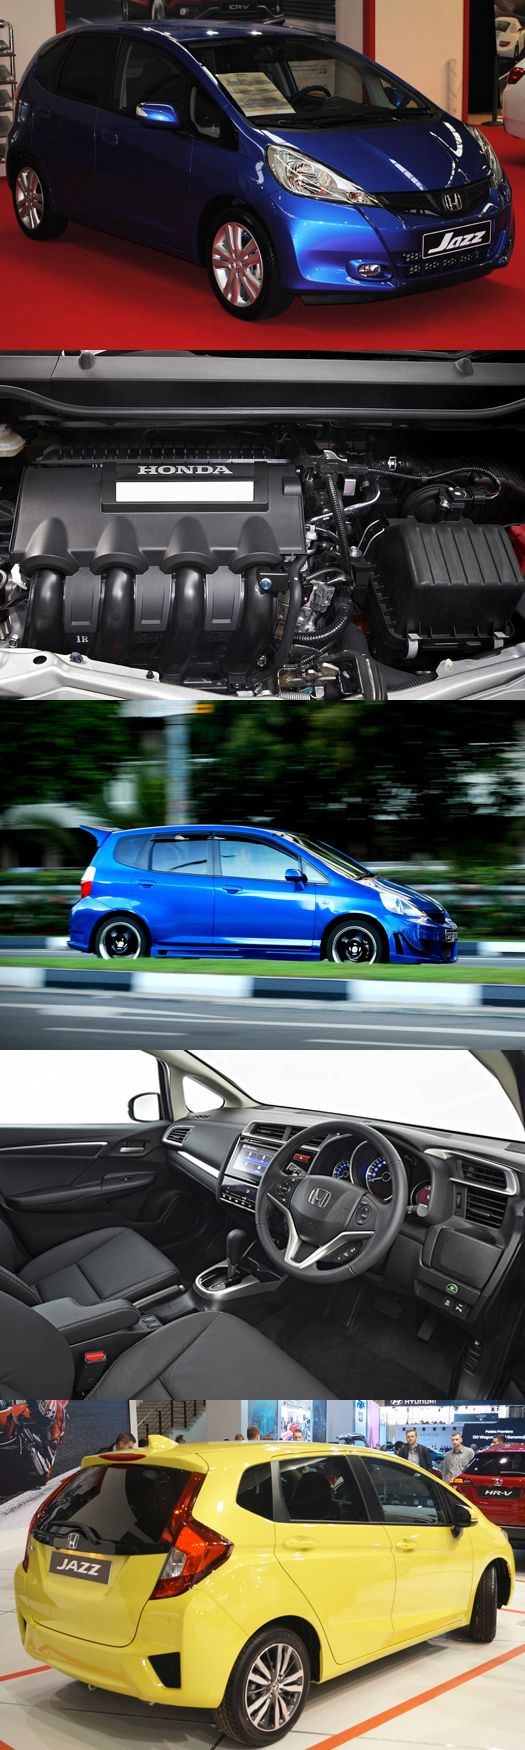 #Honda #Jazz with lots of versatility read more: http://www.engines4sale.co.uk/blog/honda-jazz-with-lots-of-versatility/